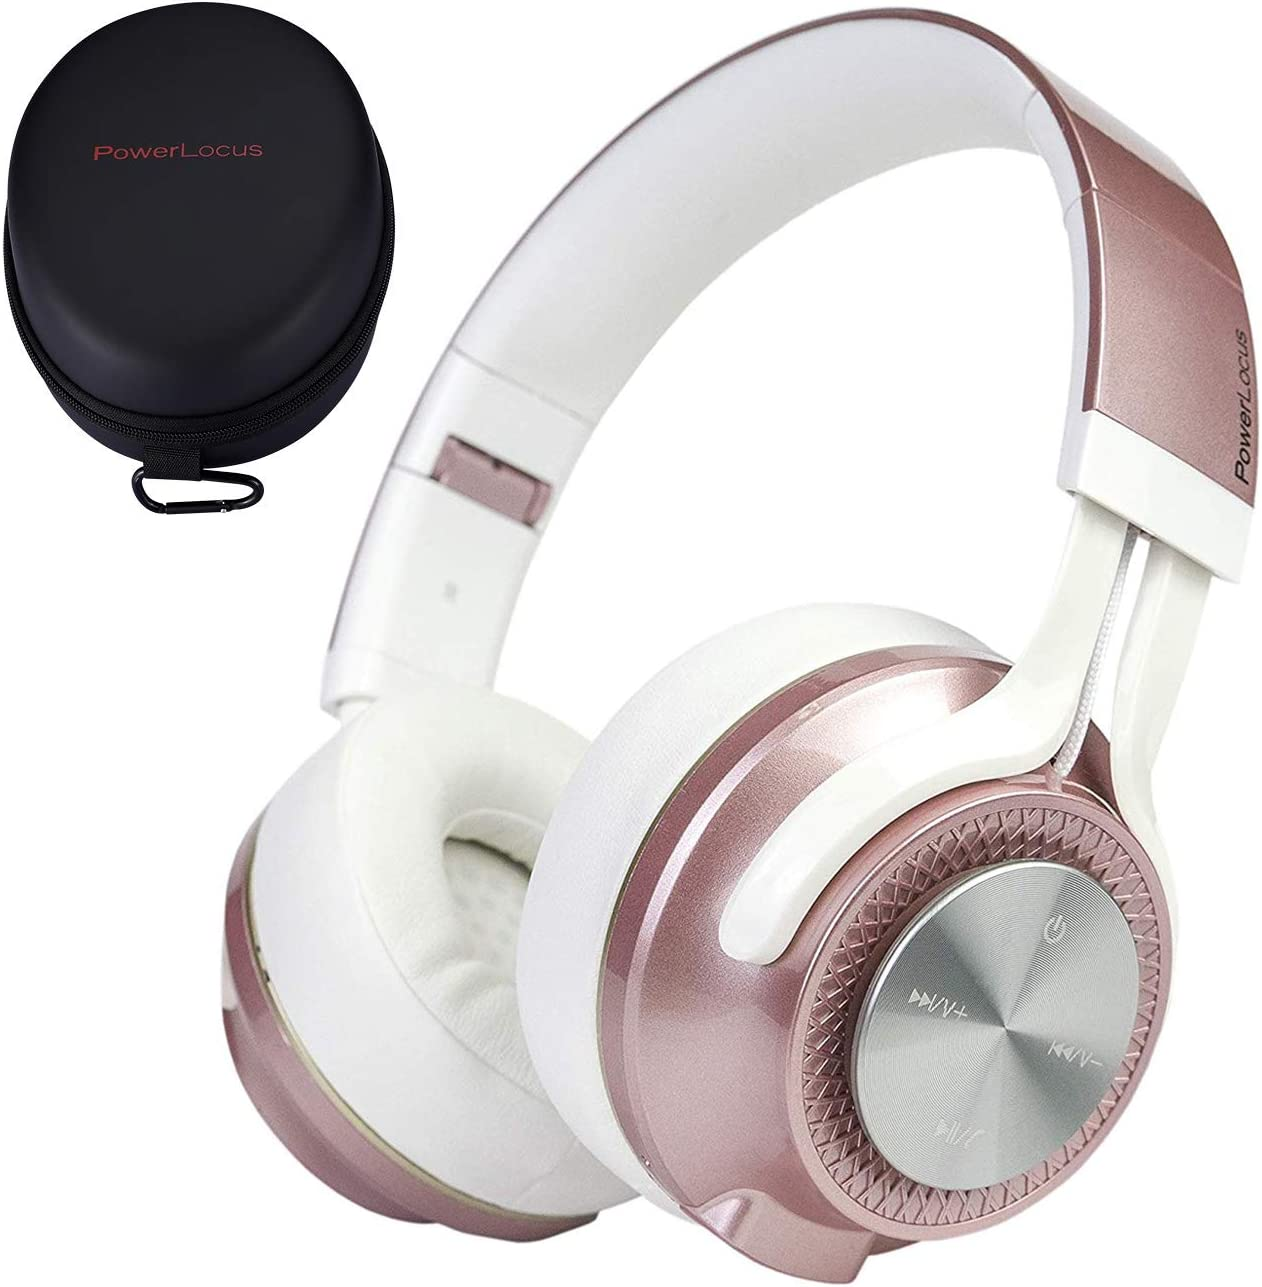 PowerLocus Bluetooth Auriculares Diadema, [Bluetooth 5.0,40h de música] Cascos Bluetooth Inalámbrico Plegable Casco Bluetooth y Cable Sonido Estéreo con Micrófono para iPhone,Móviles,TV, PC, Oro Rosa